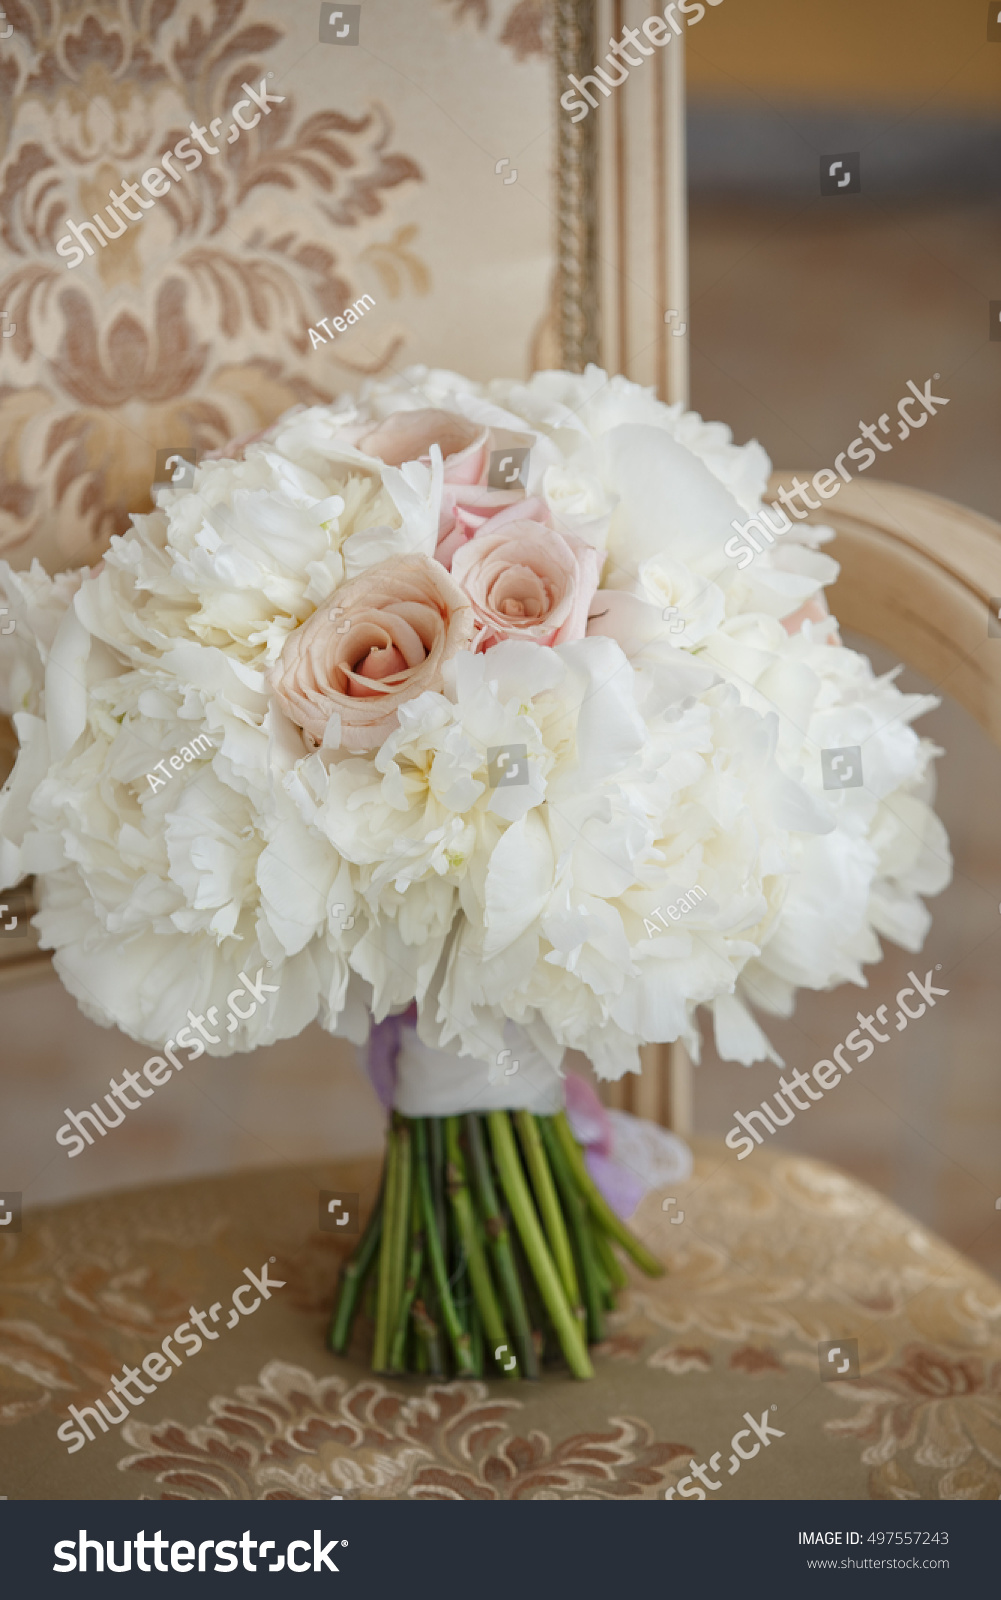 Bride Wedding Flowers Bouquet White Peony Stock Photo (Royalty Free ...